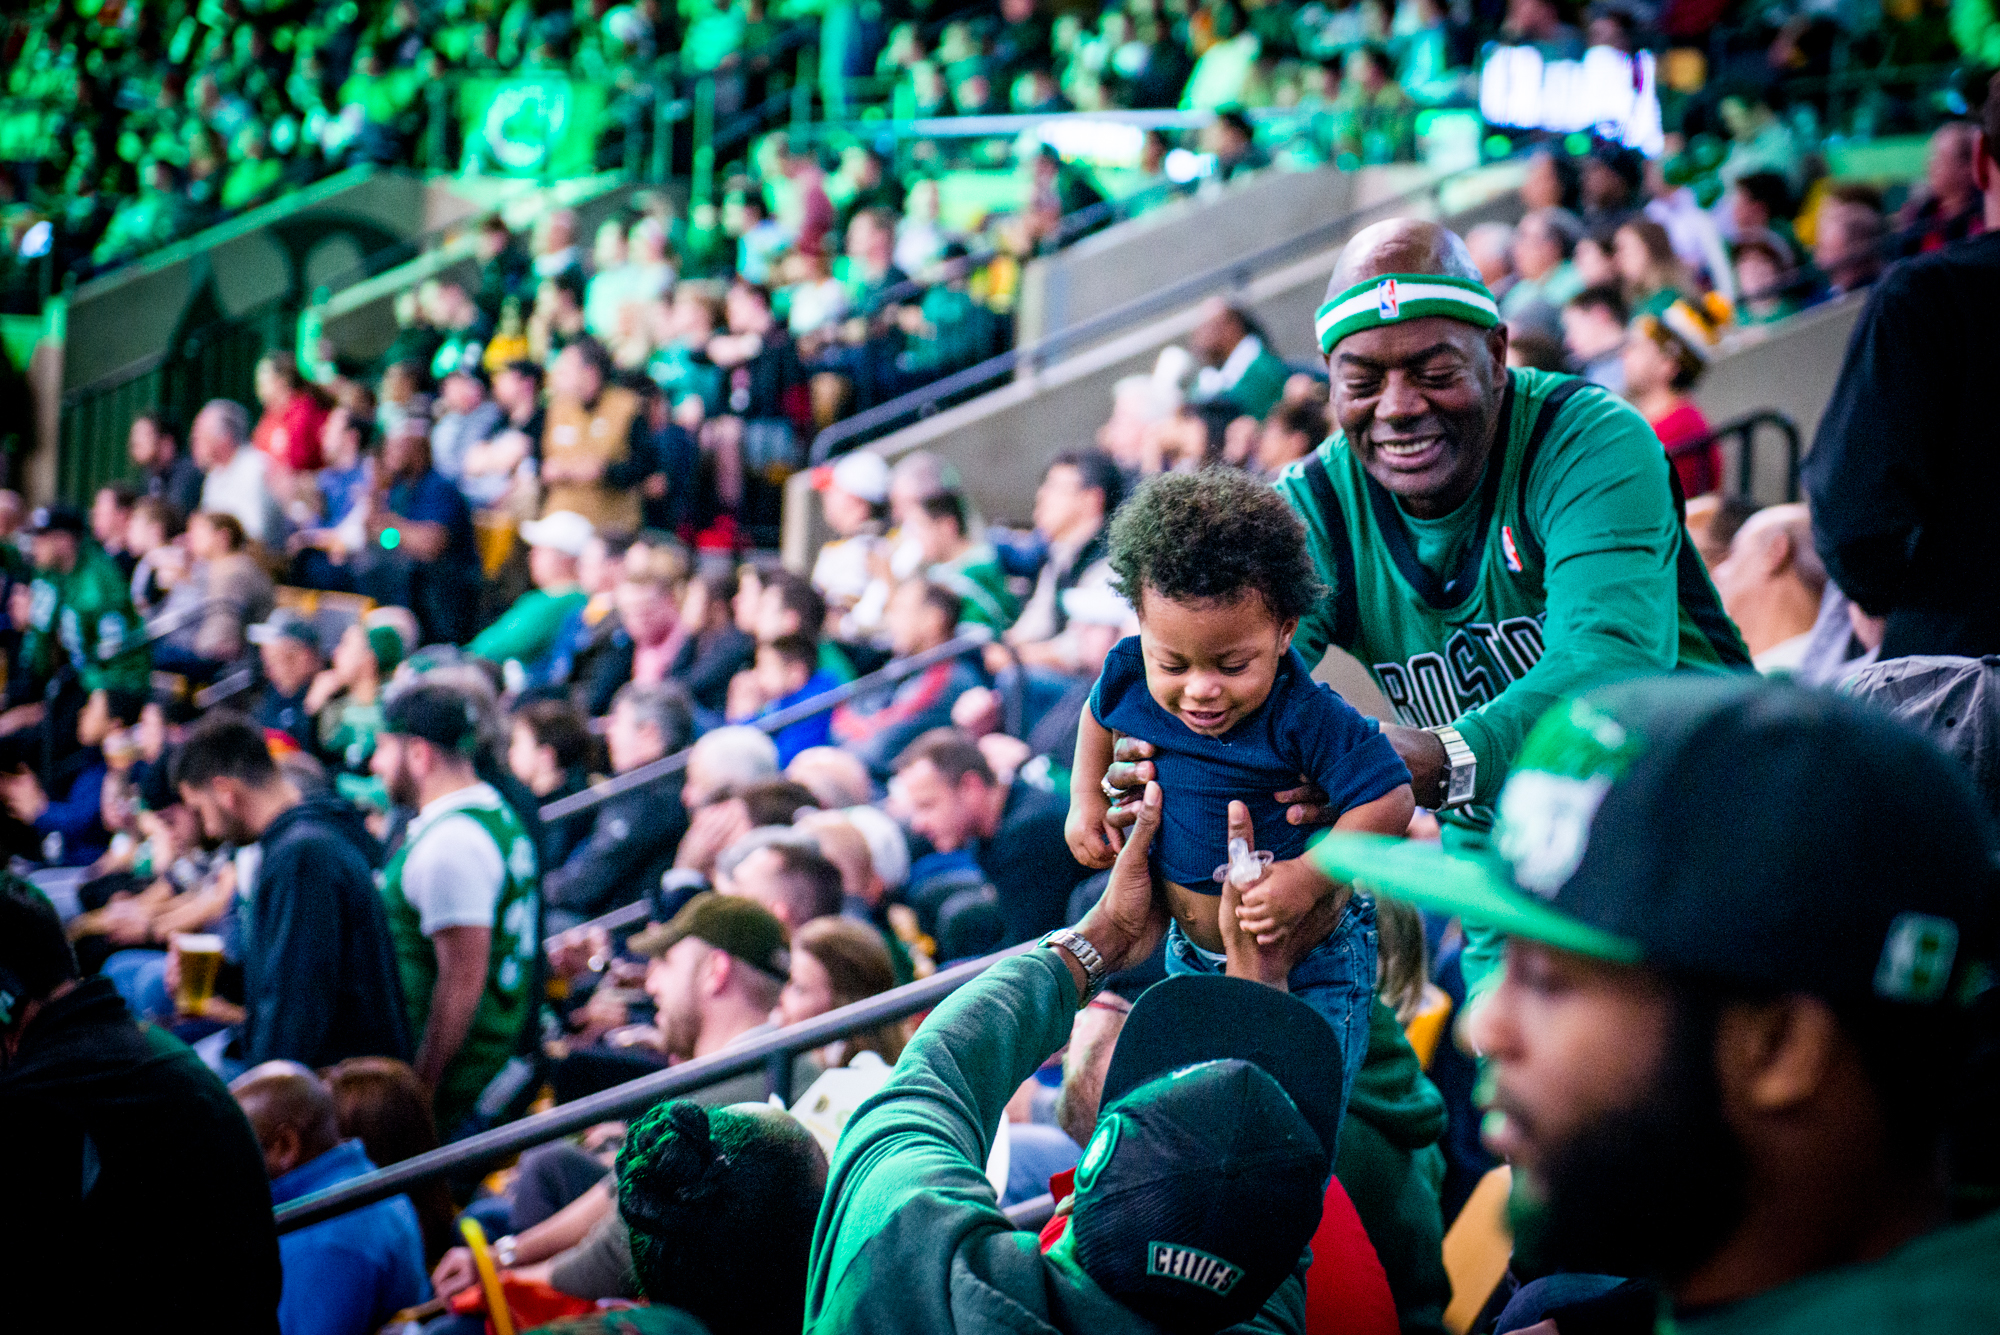 Celtics_Courtside_121615-830.jpg